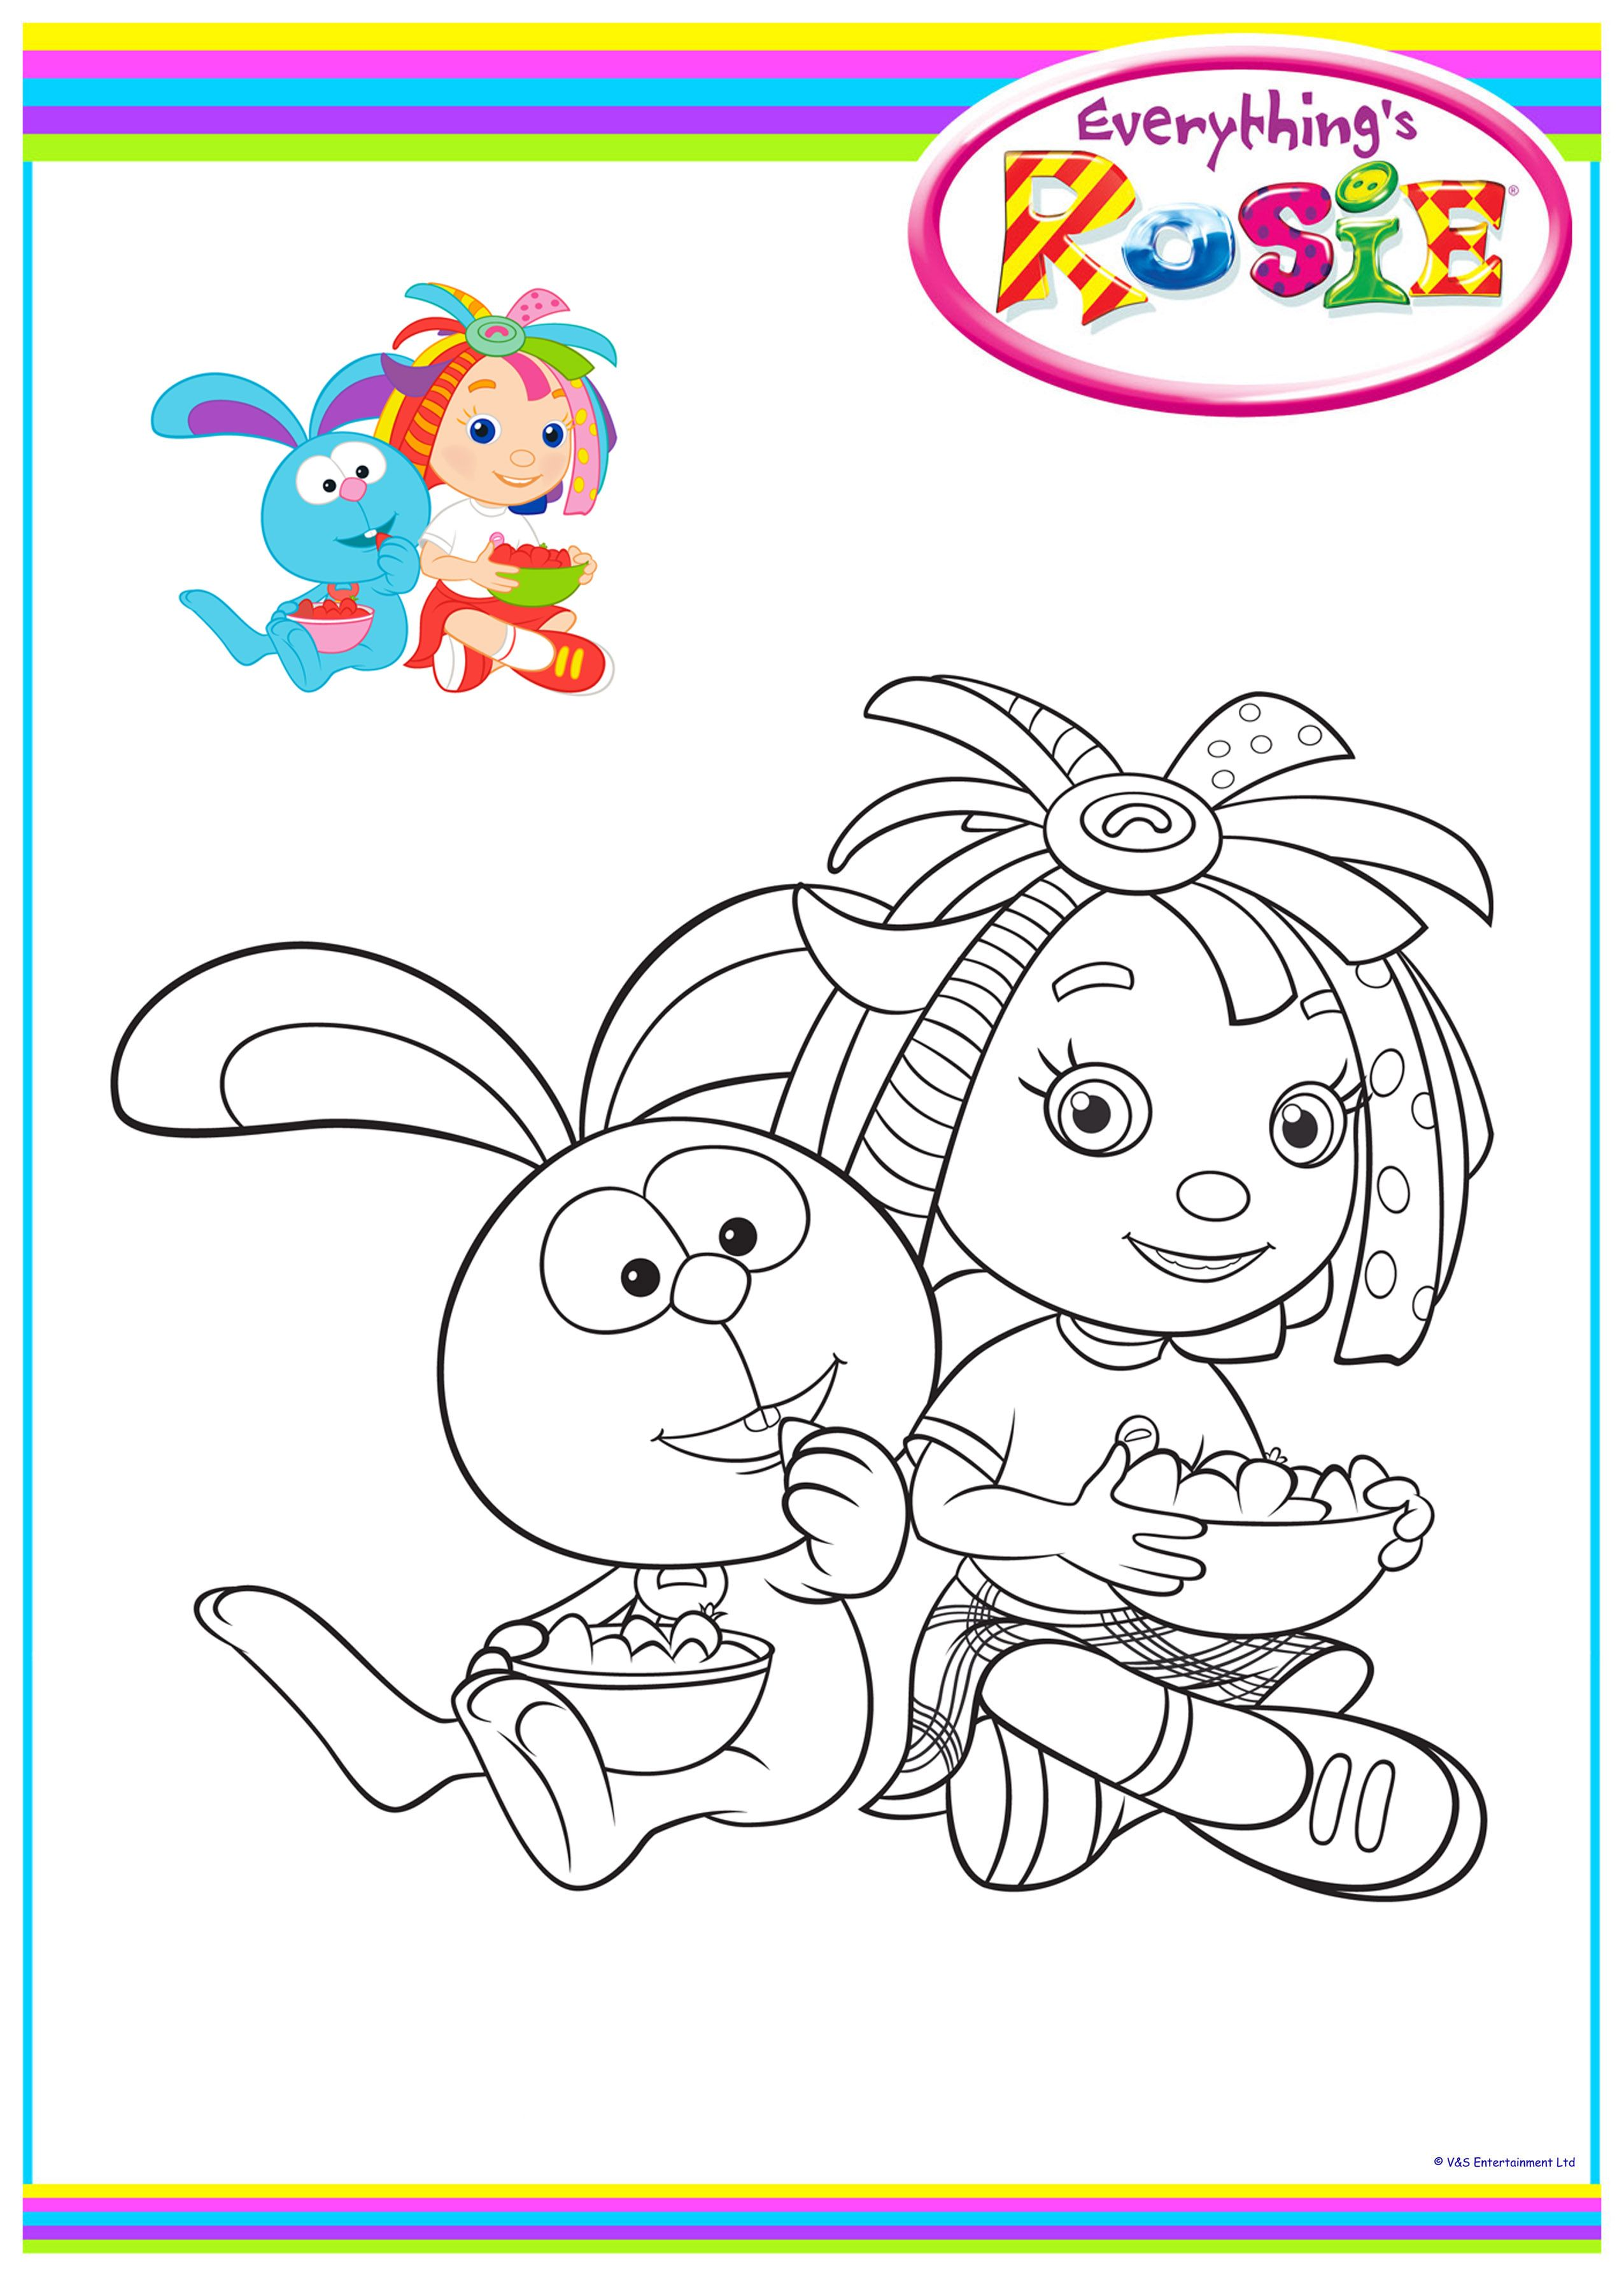 everythings rosie coloring book pages - photo#6